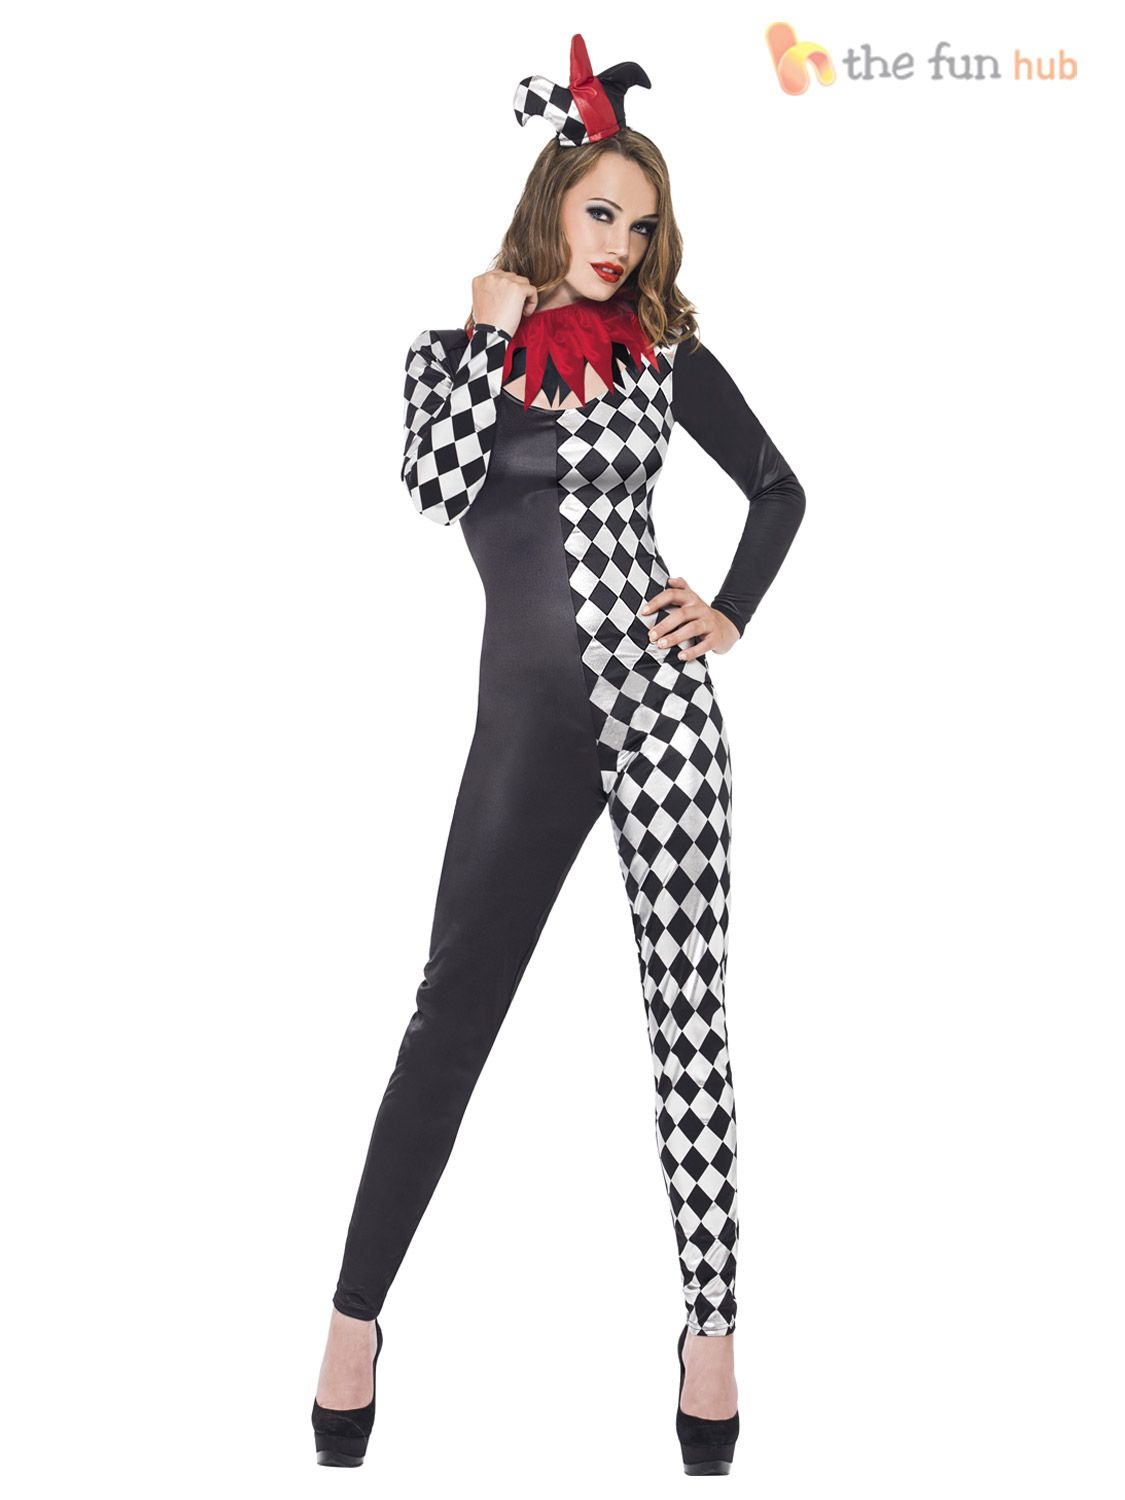 aee890b7f6007 Ladies-Sexy-Zombie-Clown-Harlequin-Jester-Halloween-Costume-Womens-Circus- Outfit